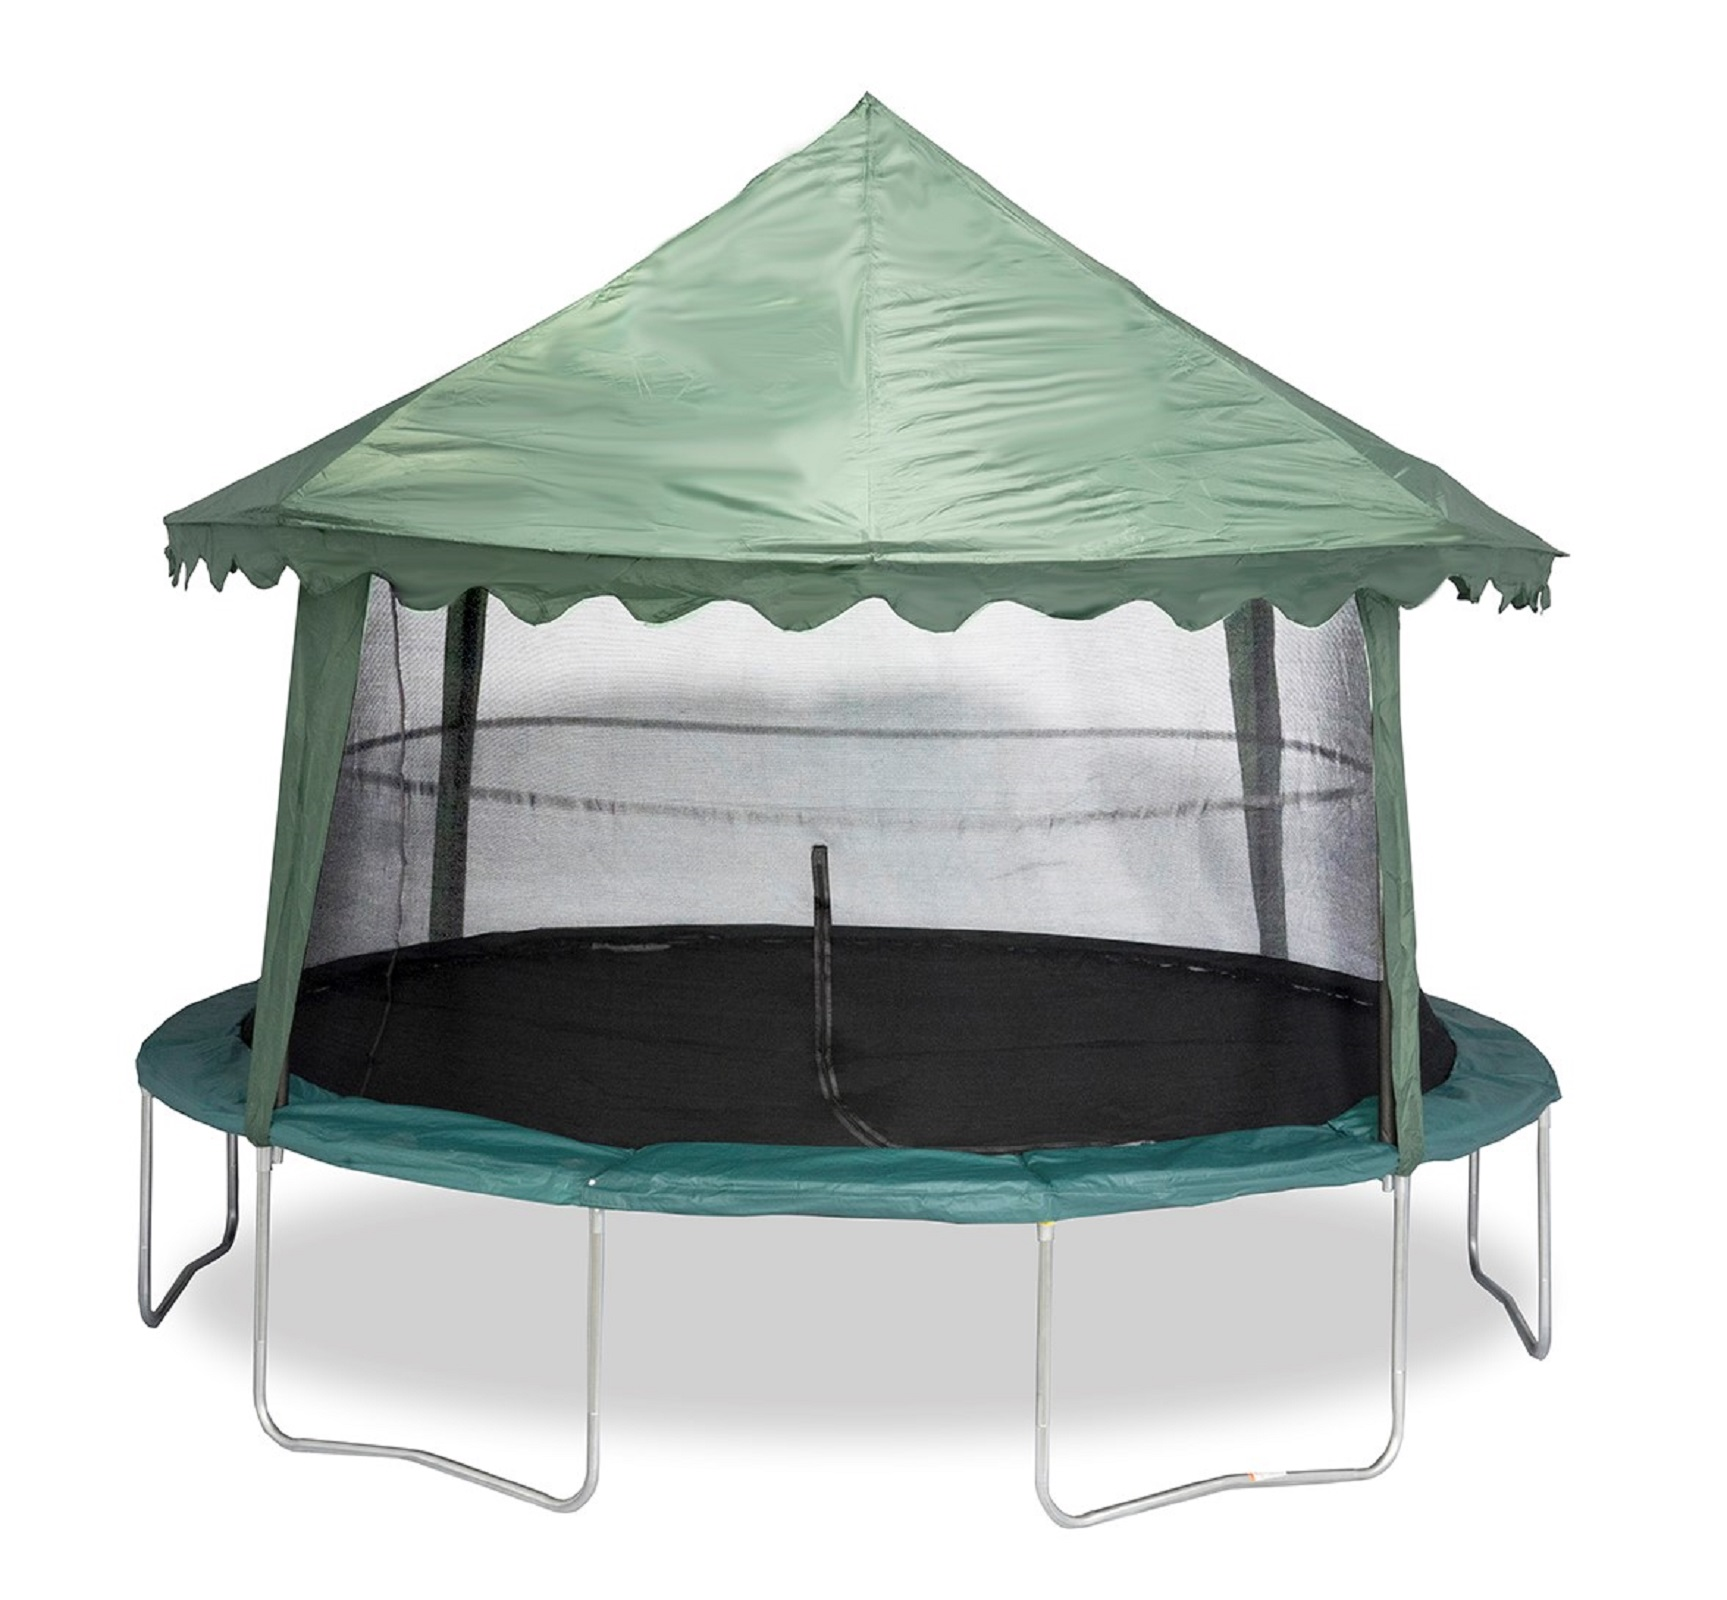 14 ft Solid Green Canopy Cover Style ACC-SGC14 (designed for use ONLY on 4 pole 14 ft enclosure systems)  sc 1 st  Bazoongi™ Kids! & Bazoongi™ Kids! - Trampolines